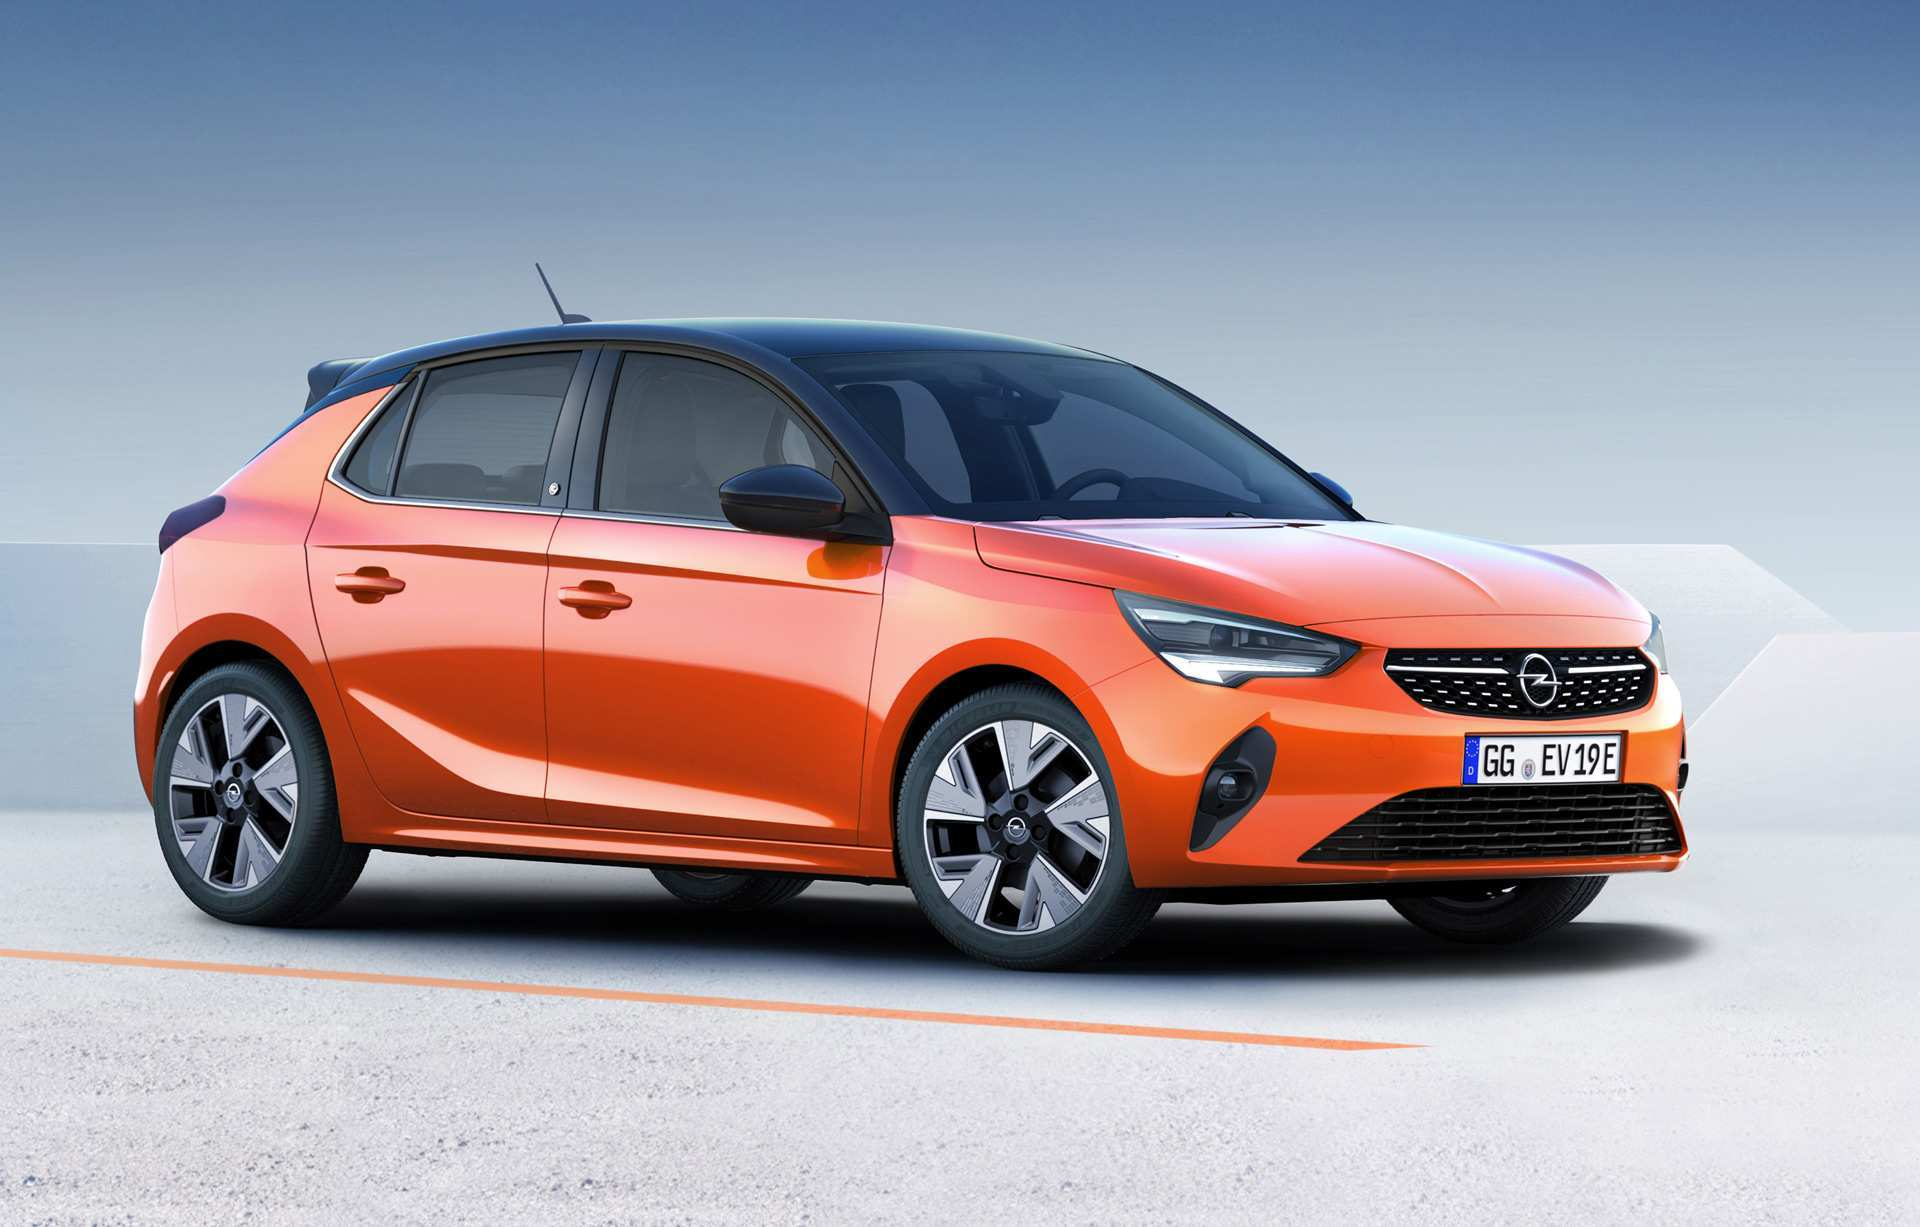 45 New Opel News 2020 Picture for Opel News 2020